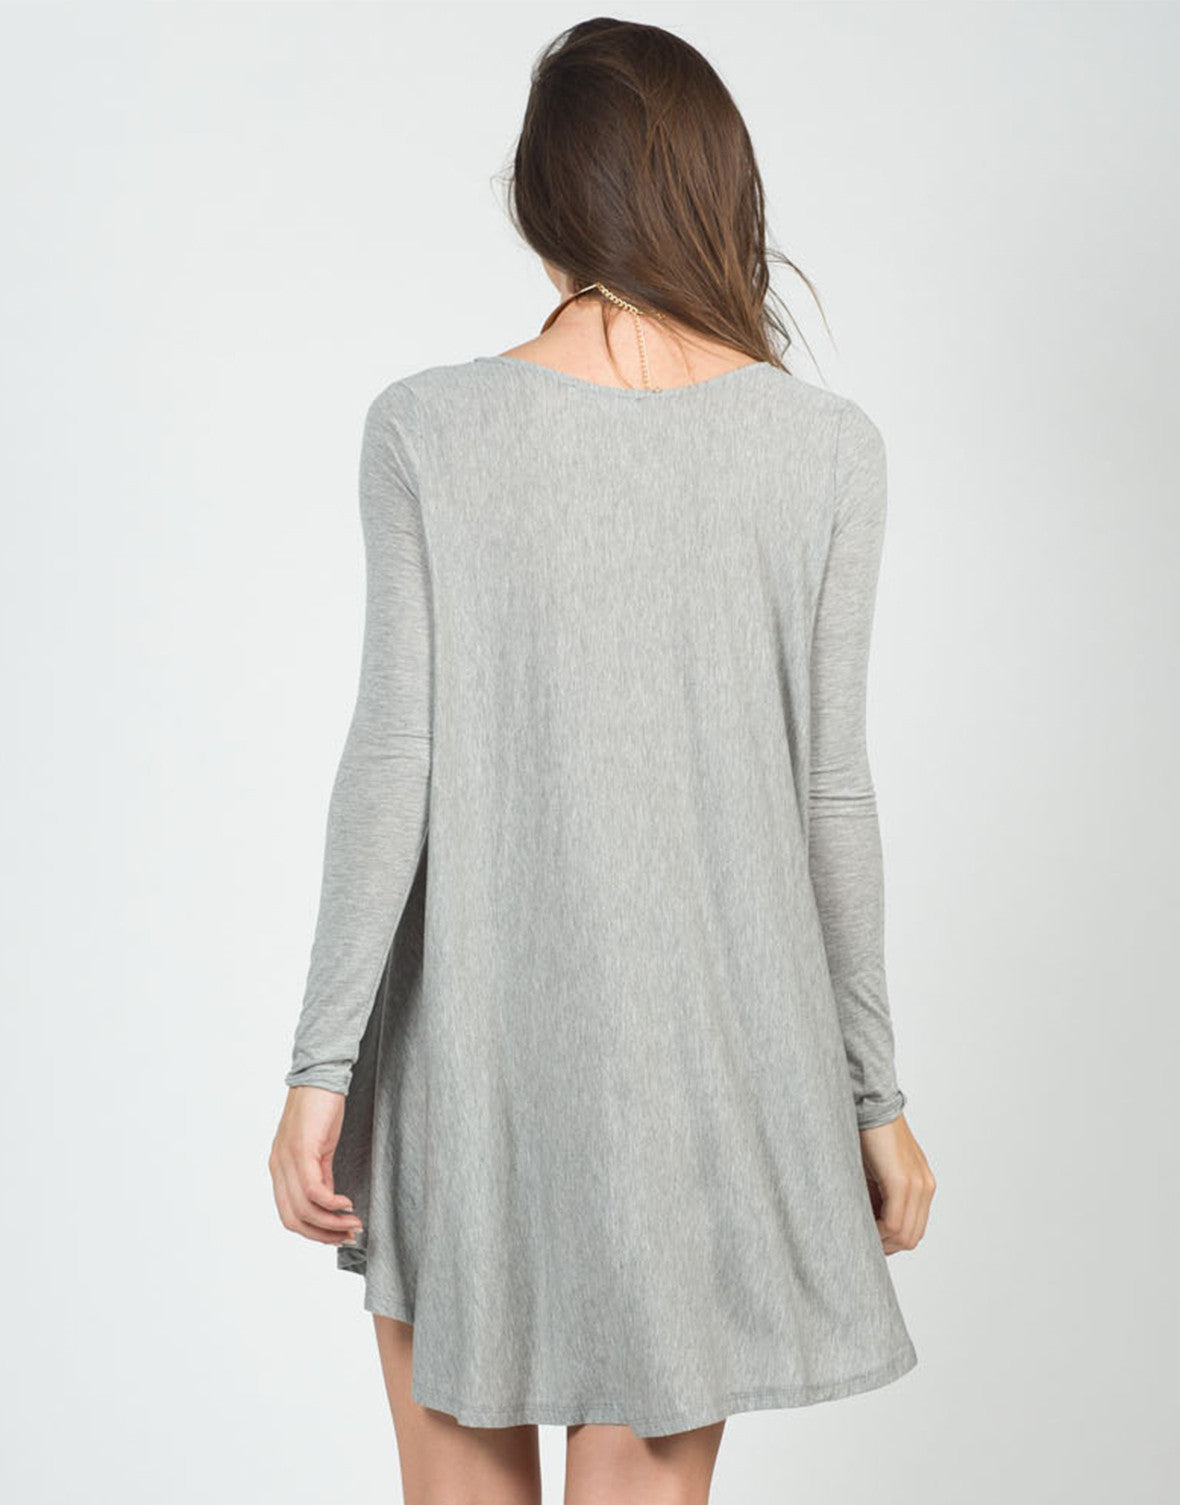 Back View of Long Sleeve Swing Top